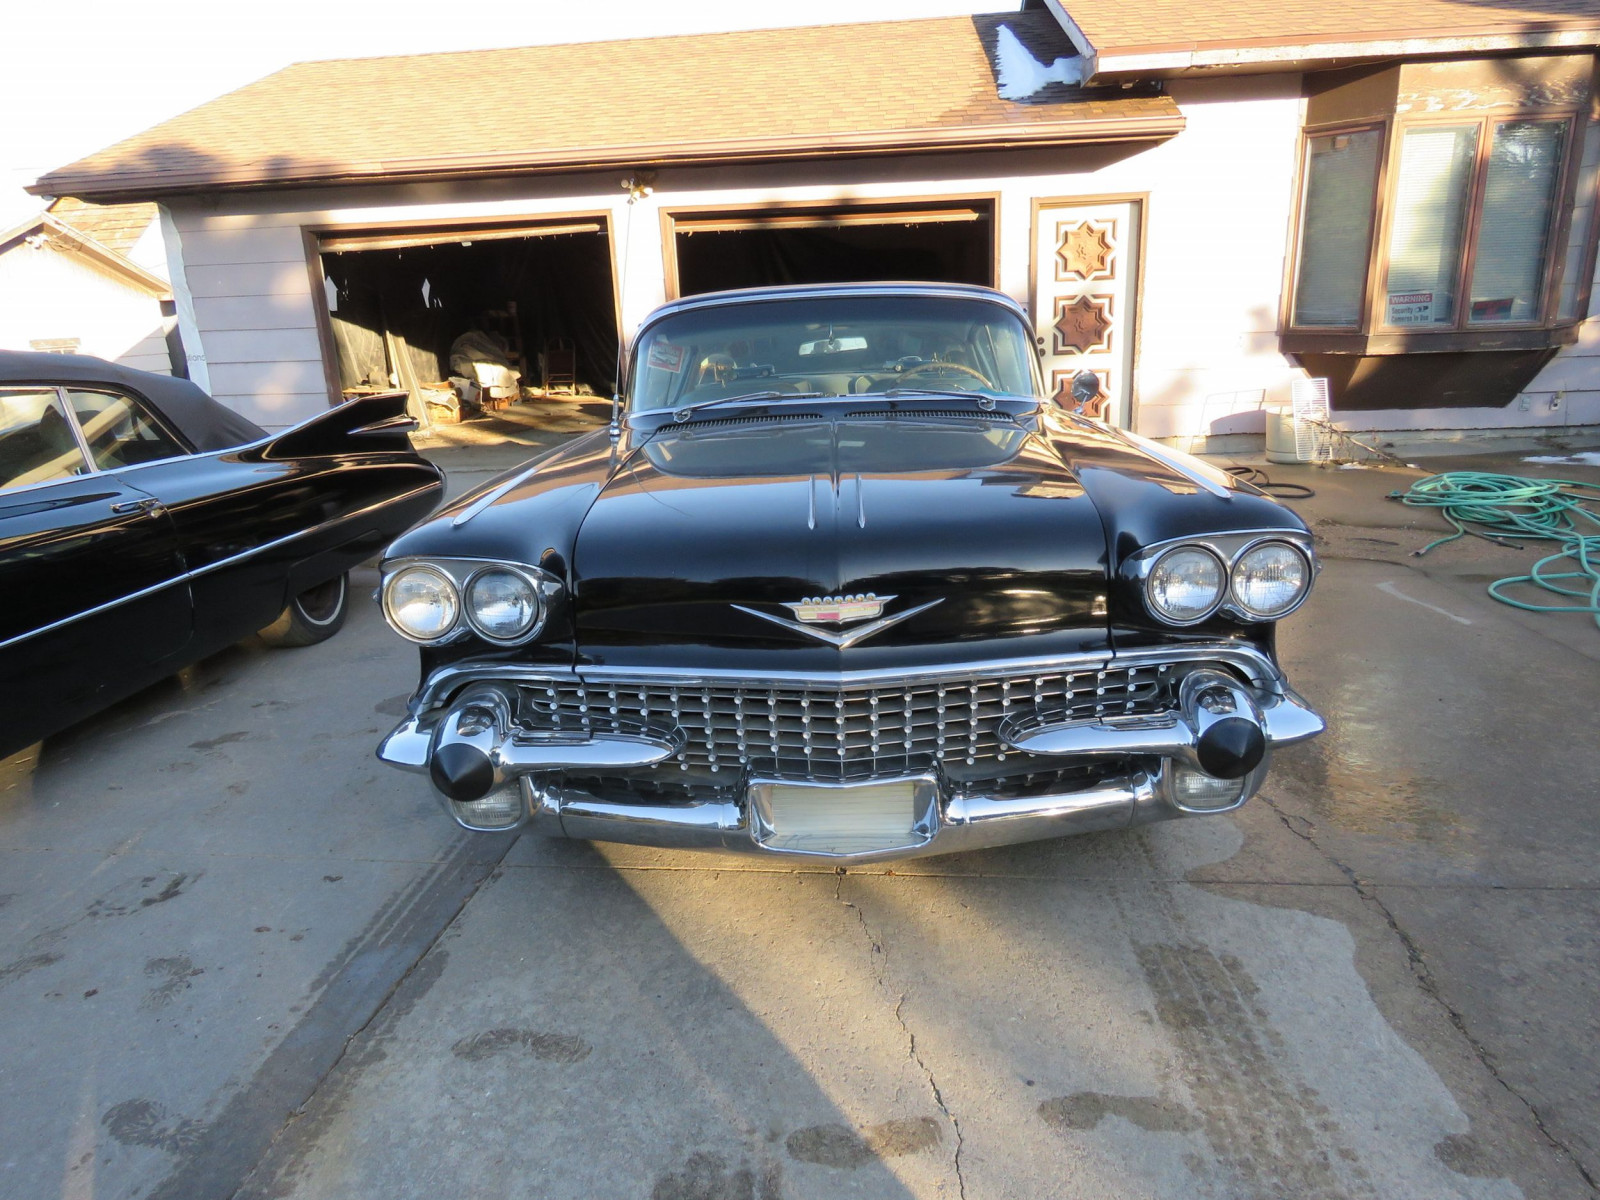 1958 Cadillac Coupe DeVille - Image 2